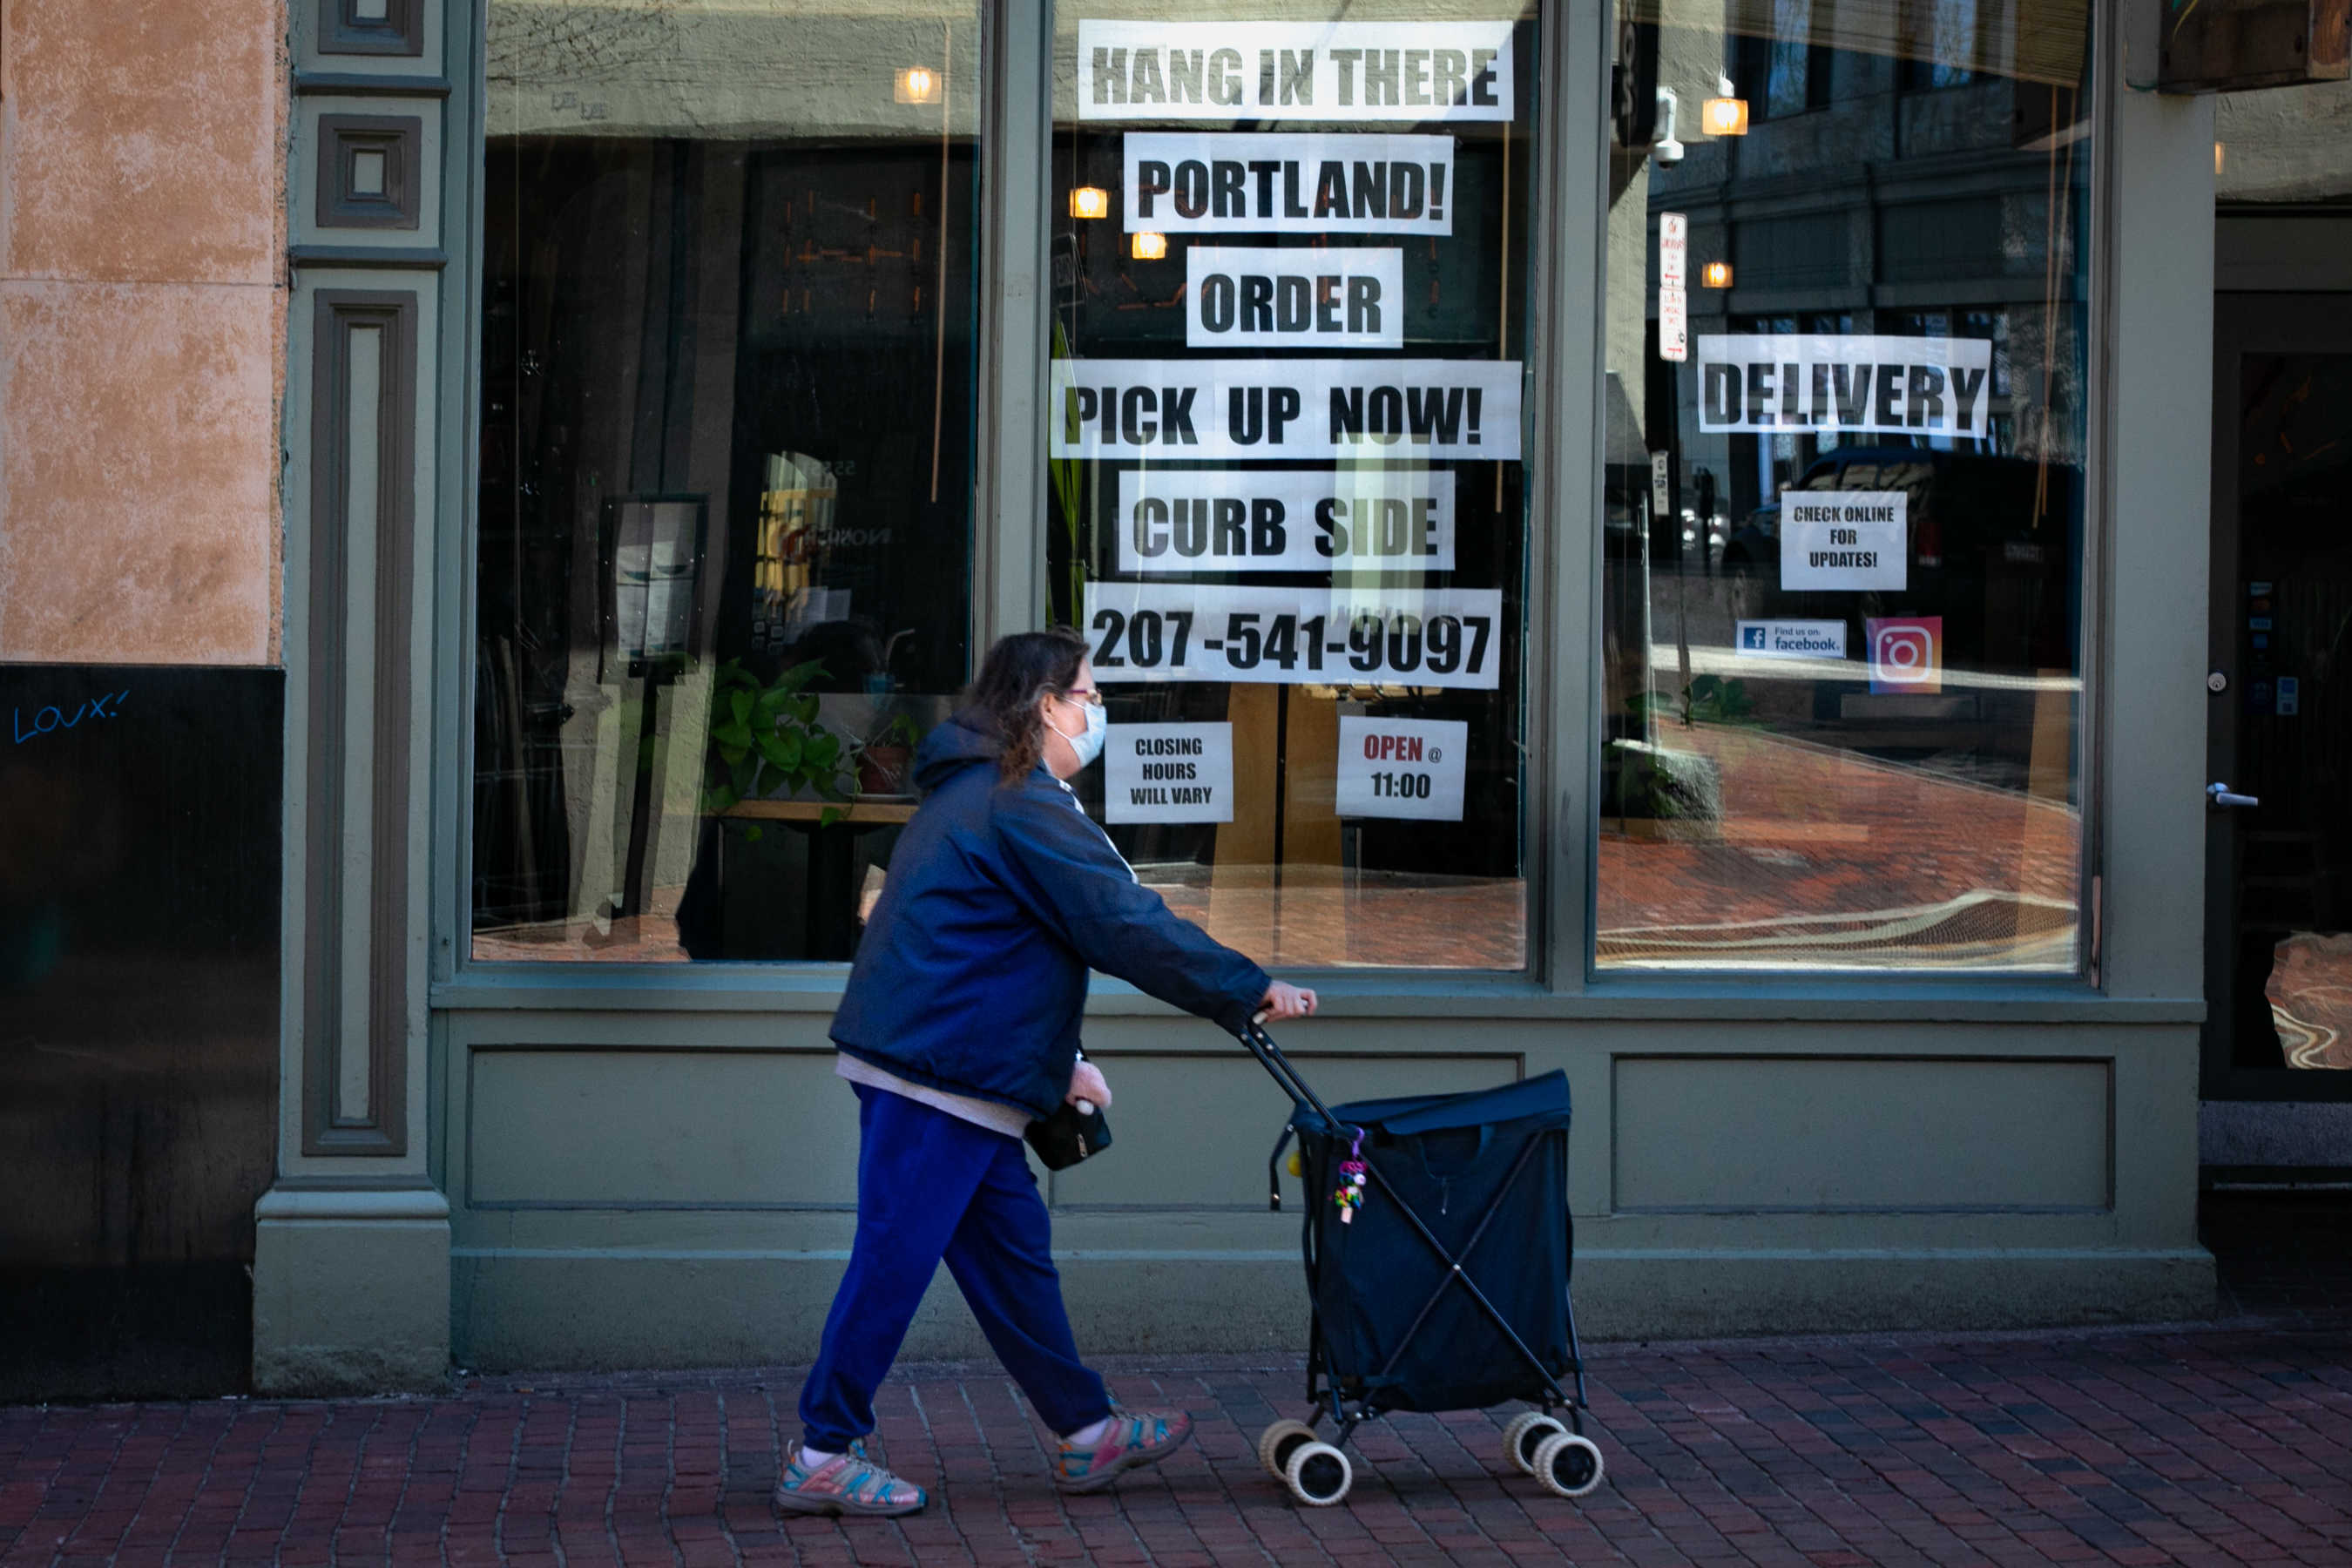 Portland Maine Restaurants Open On Christmas 2020 What Maine cities and restaurants have to weigh before expanding